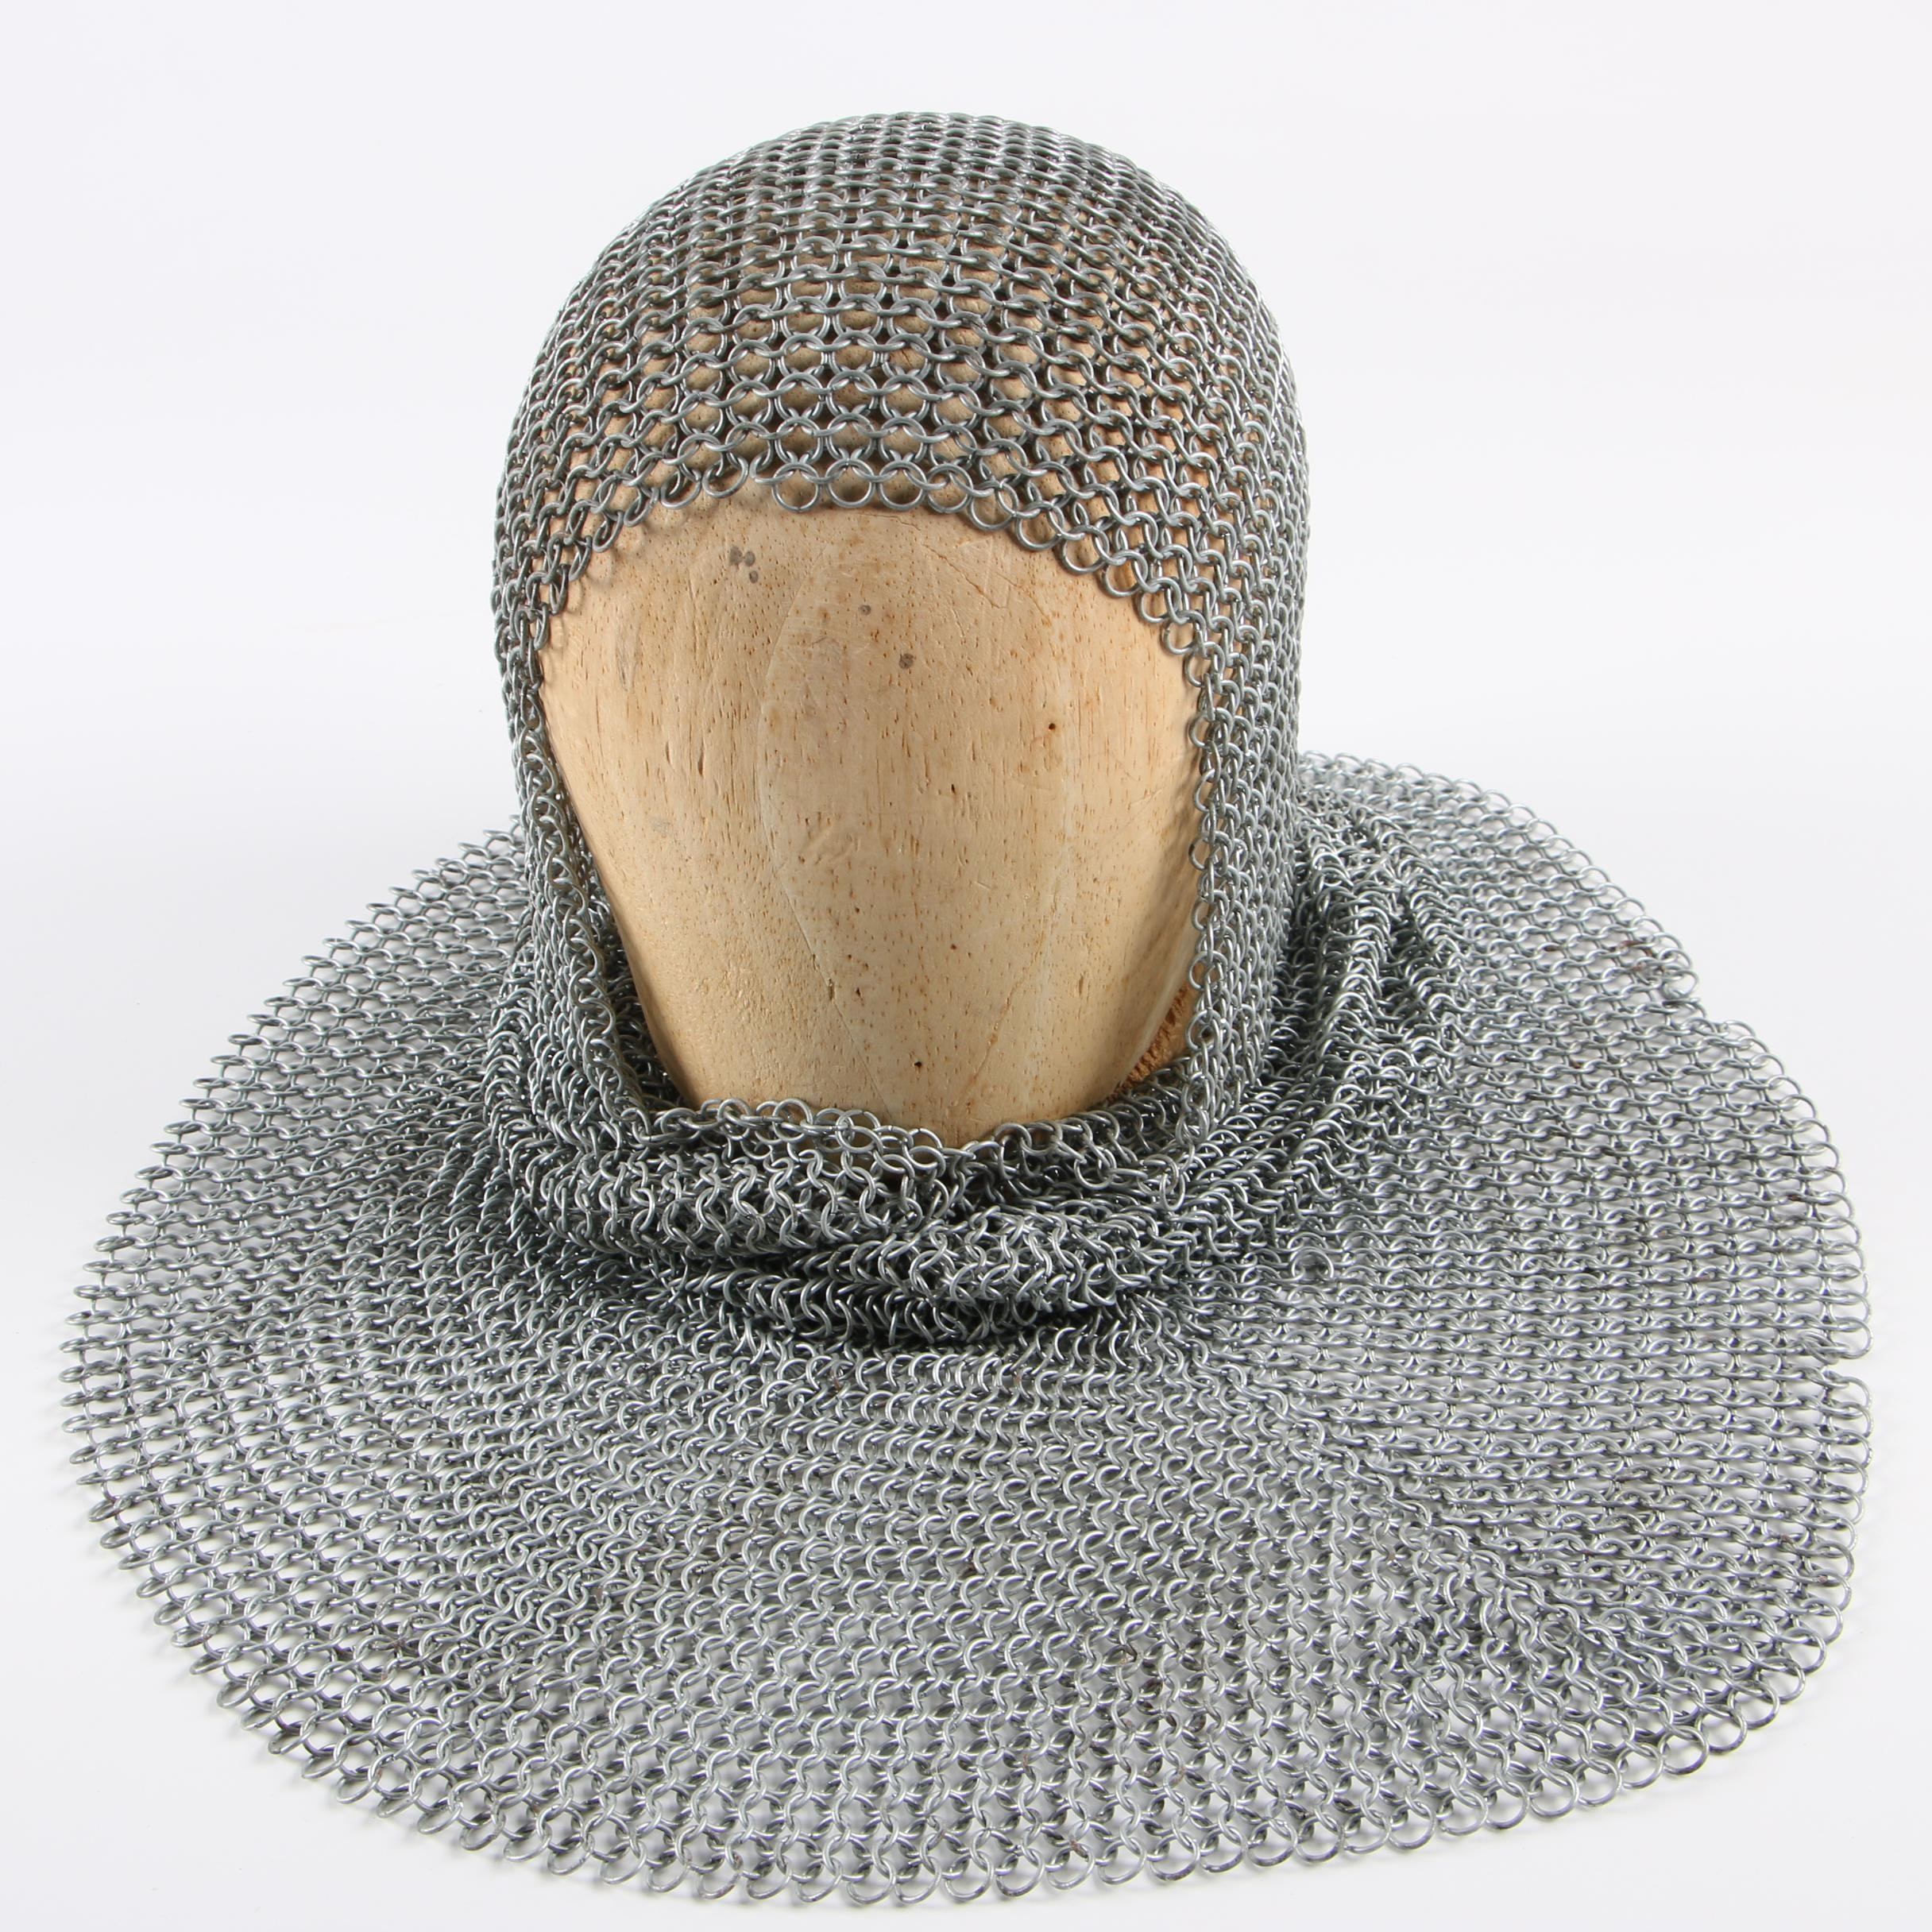 Chainmail Coif with Wooden Form